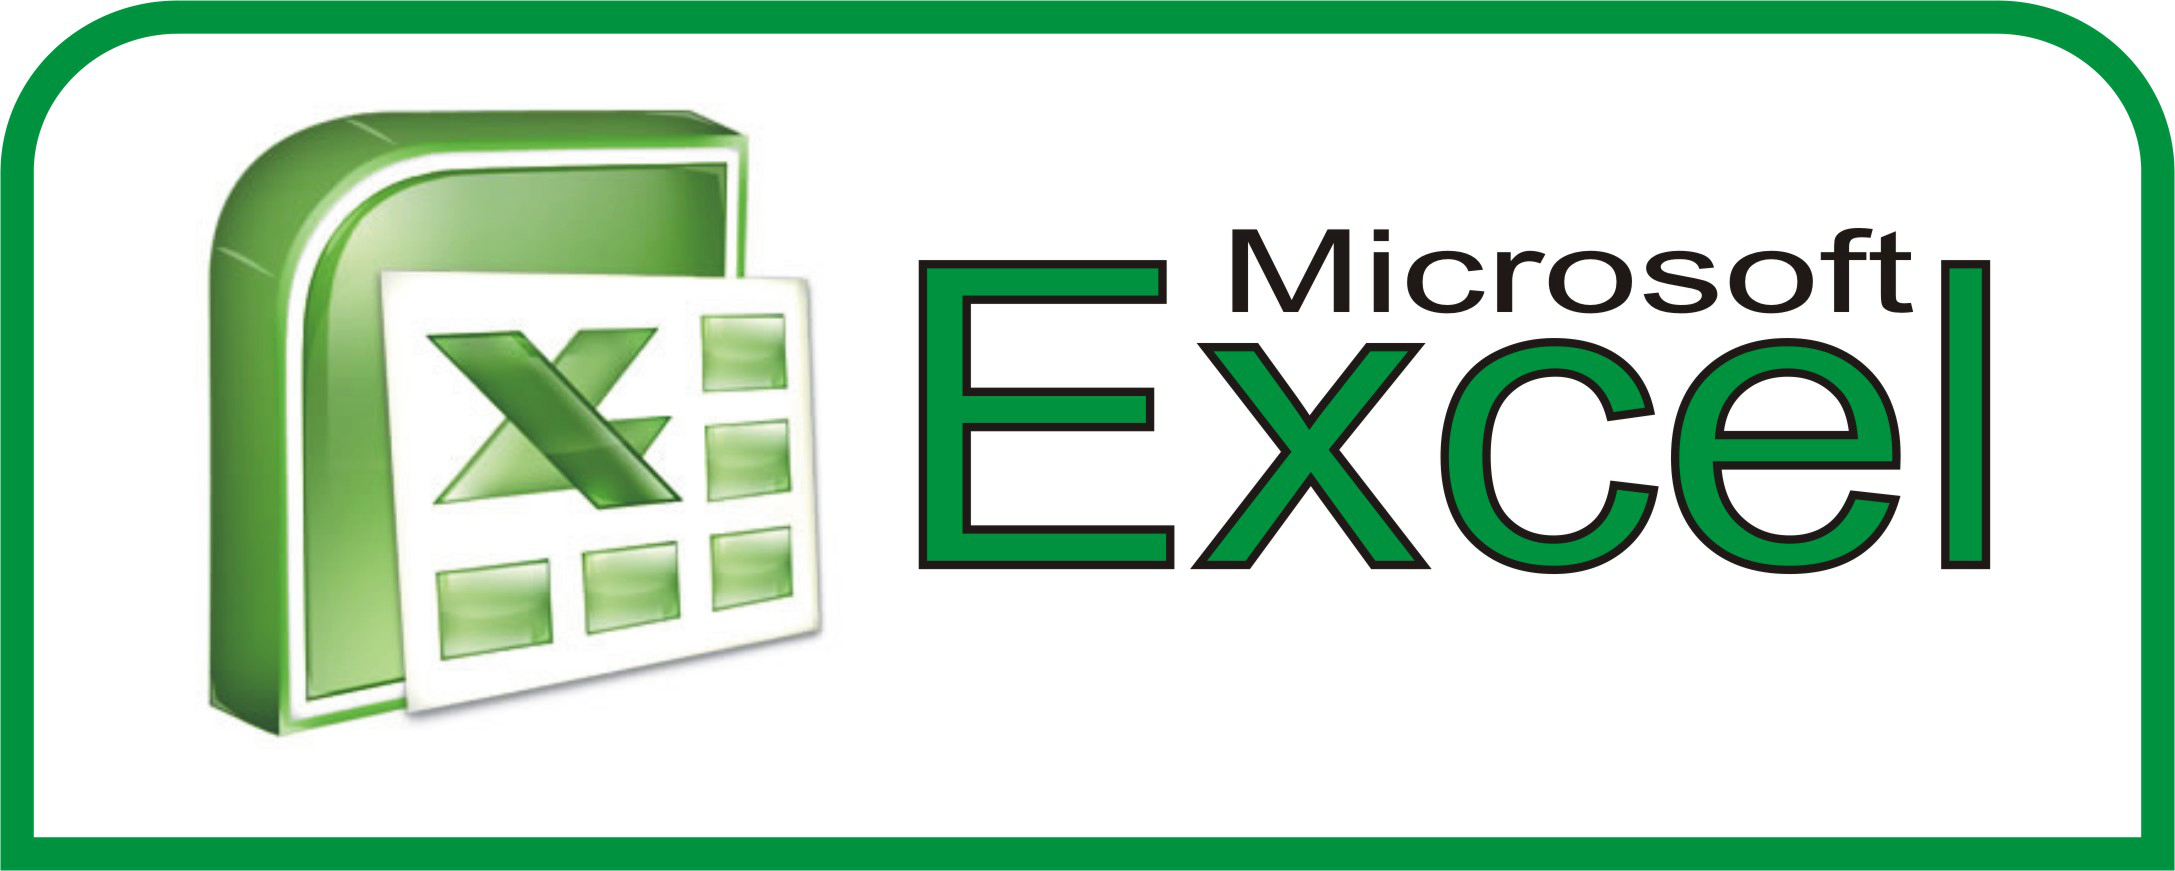 Ediblewildsus  Fascinating  Excel Shortcuts You Probably Didnt Know About  Techdissected With Lovable Export Excel To Json Besides How Do I Do A Vlookup In Excel Furthermore Undo In Excel  With Comely Excel Table Total Row Also Excel Bom Template In Addition Excel Vba Activeworkbooksaveas And Runtime Error  Object Required Excel As Well As Excel Insert Table Additionally Mysql Export To Excel From Techdissectedcom With Ediblewildsus  Lovable  Excel Shortcuts You Probably Didnt Know About  Techdissected With Comely Export Excel To Json Besides How Do I Do A Vlookup In Excel Furthermore Undo In Excel  And Fascinating Excel Table Total Row Also Excel Bom Template In Addition Excel Vba Activeworkbooksaveas From Techdissectedcom